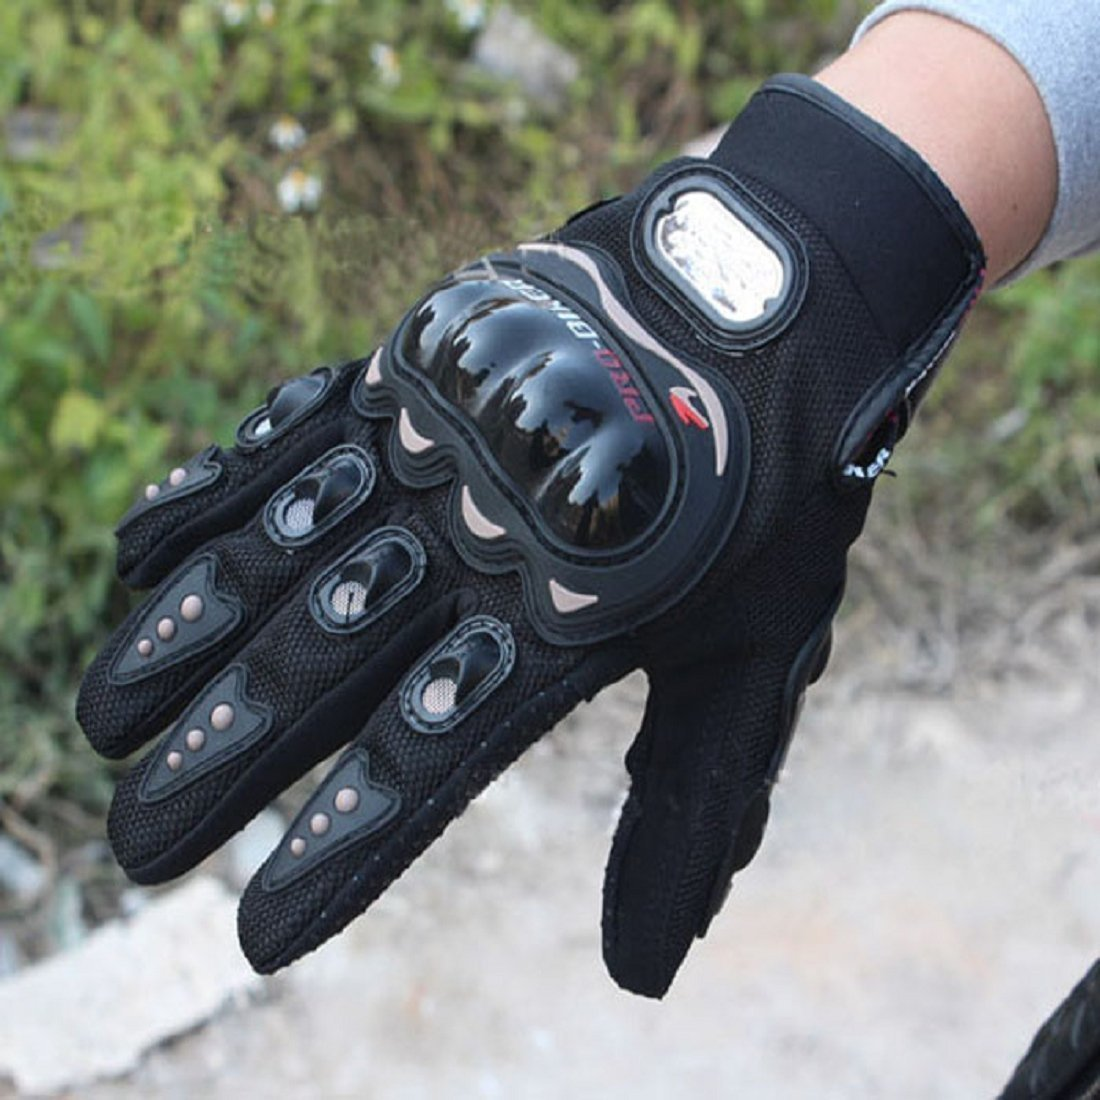 Pro-Biker Bicycle Short Sports Leather Motorcycle Powersports Racing Gloves (Black, L)